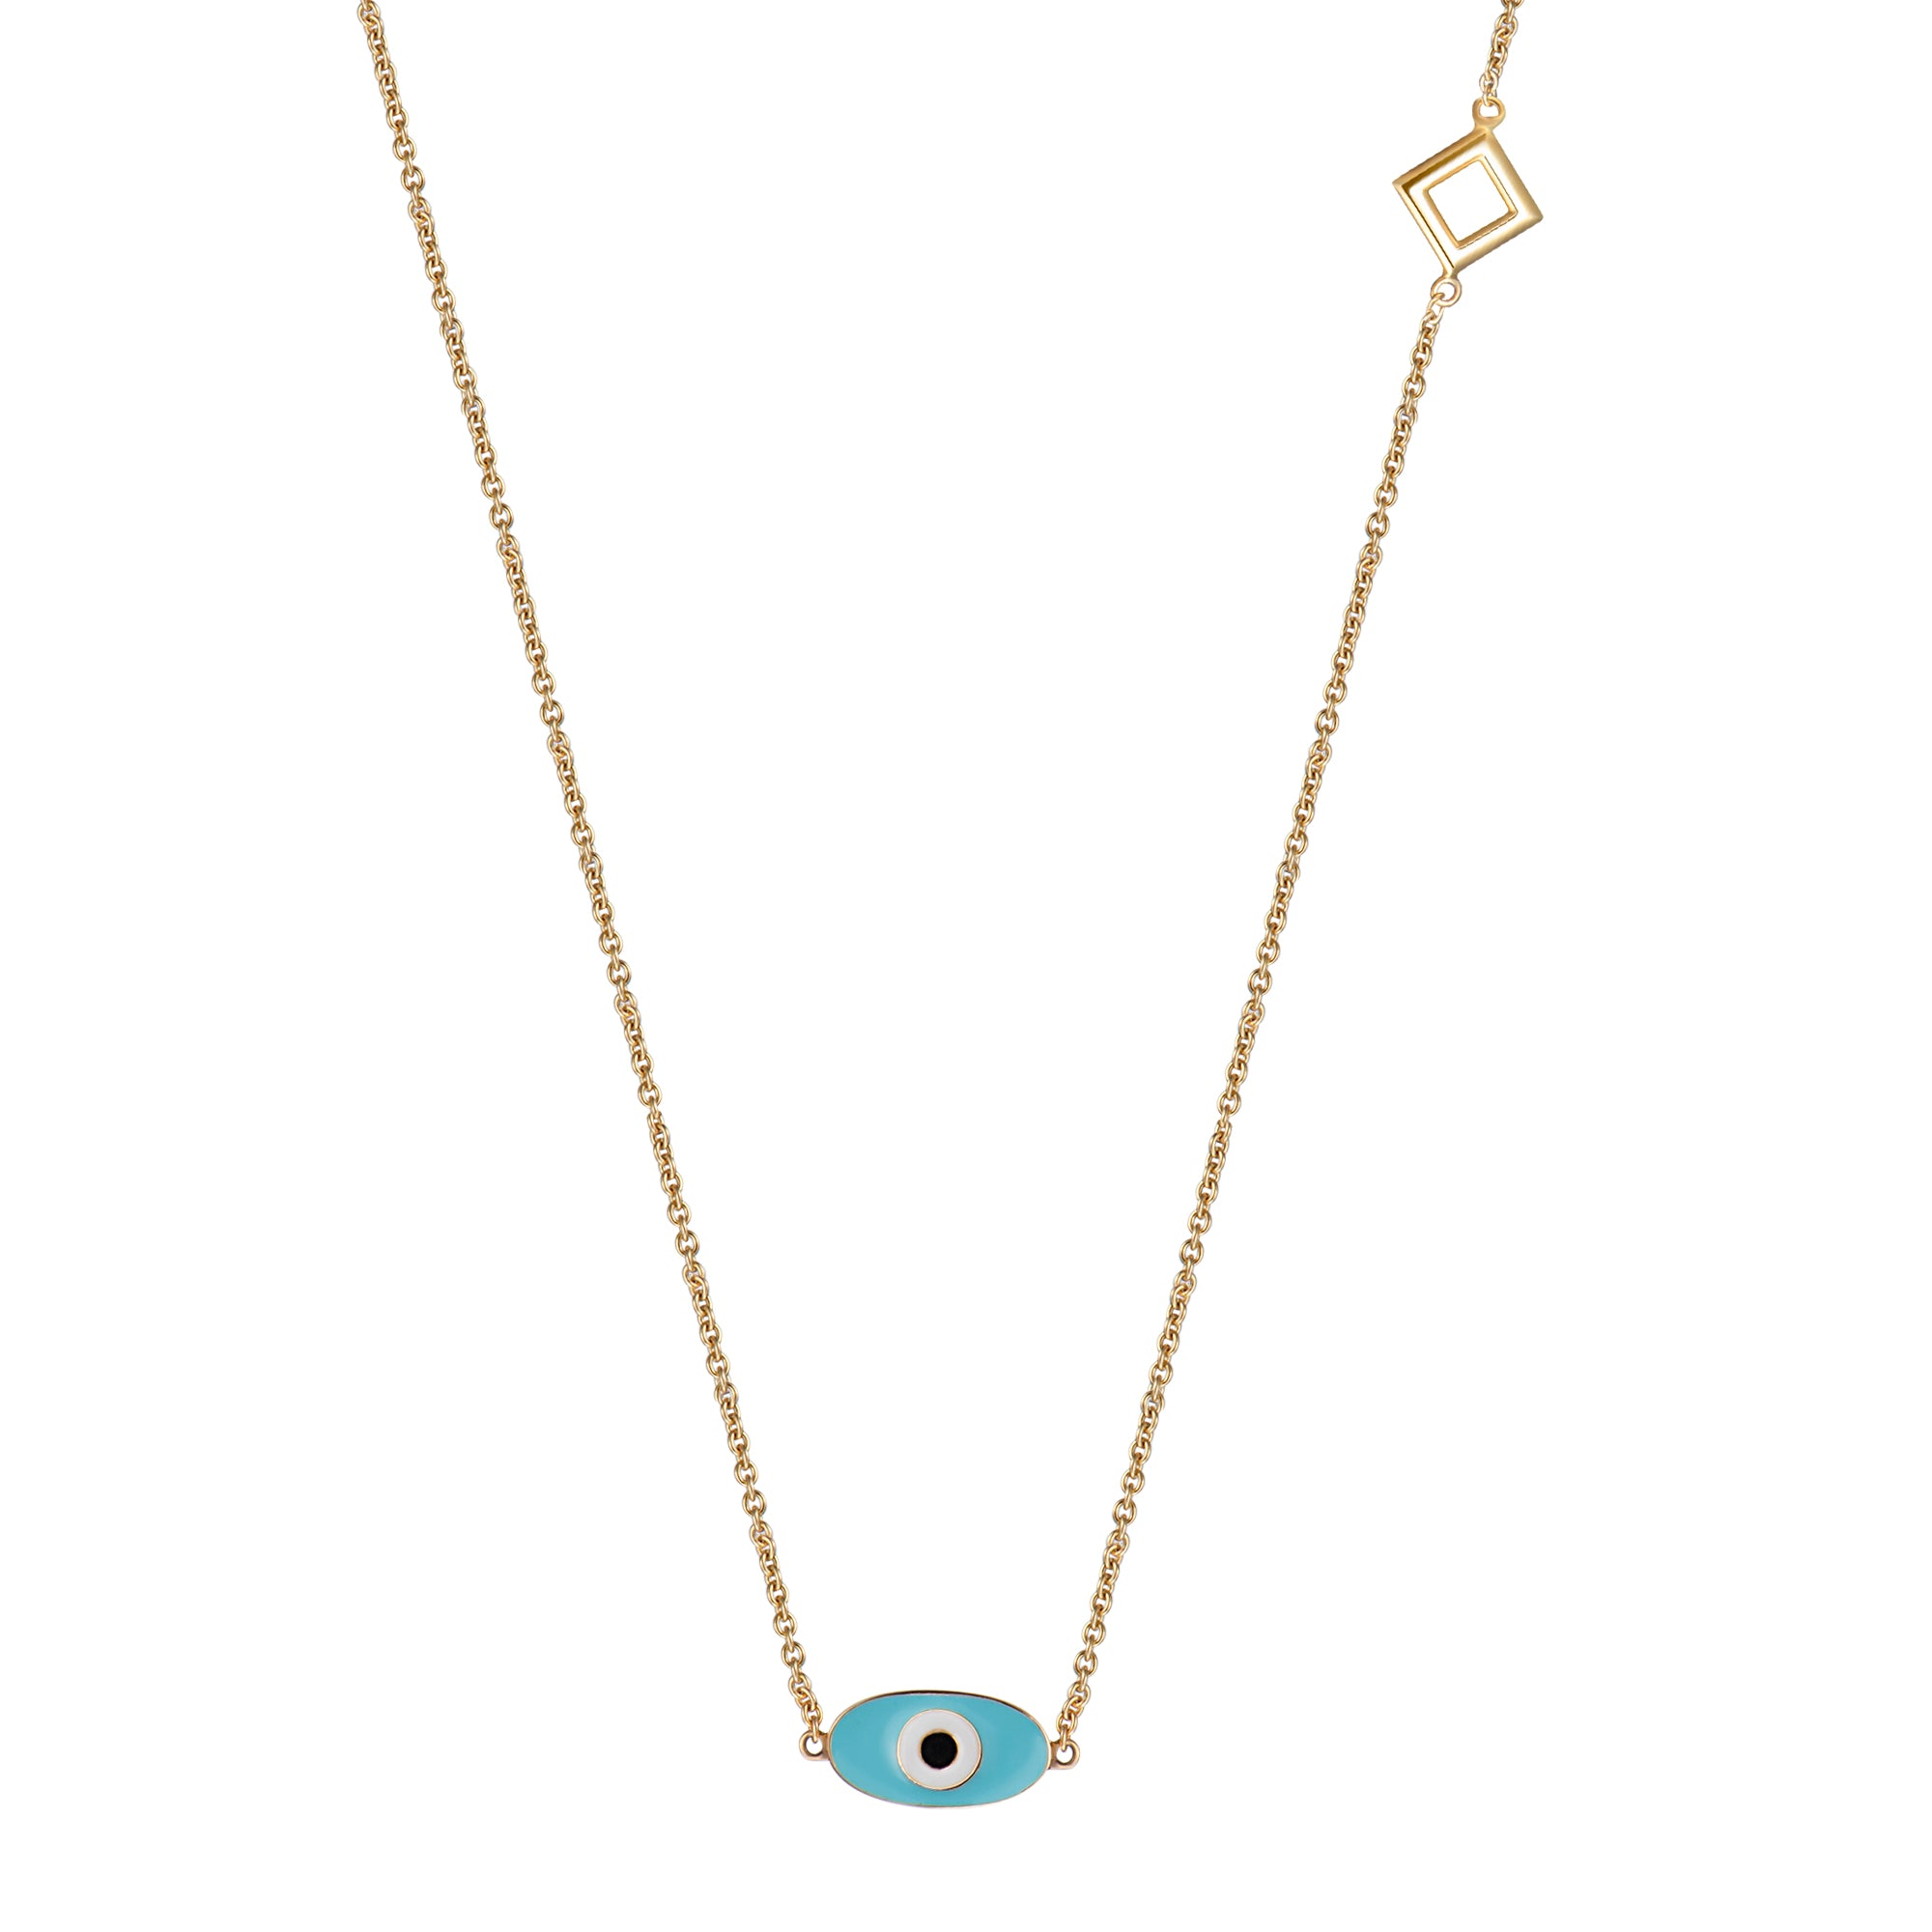 dana by evil graffiti necklace david pendant eye